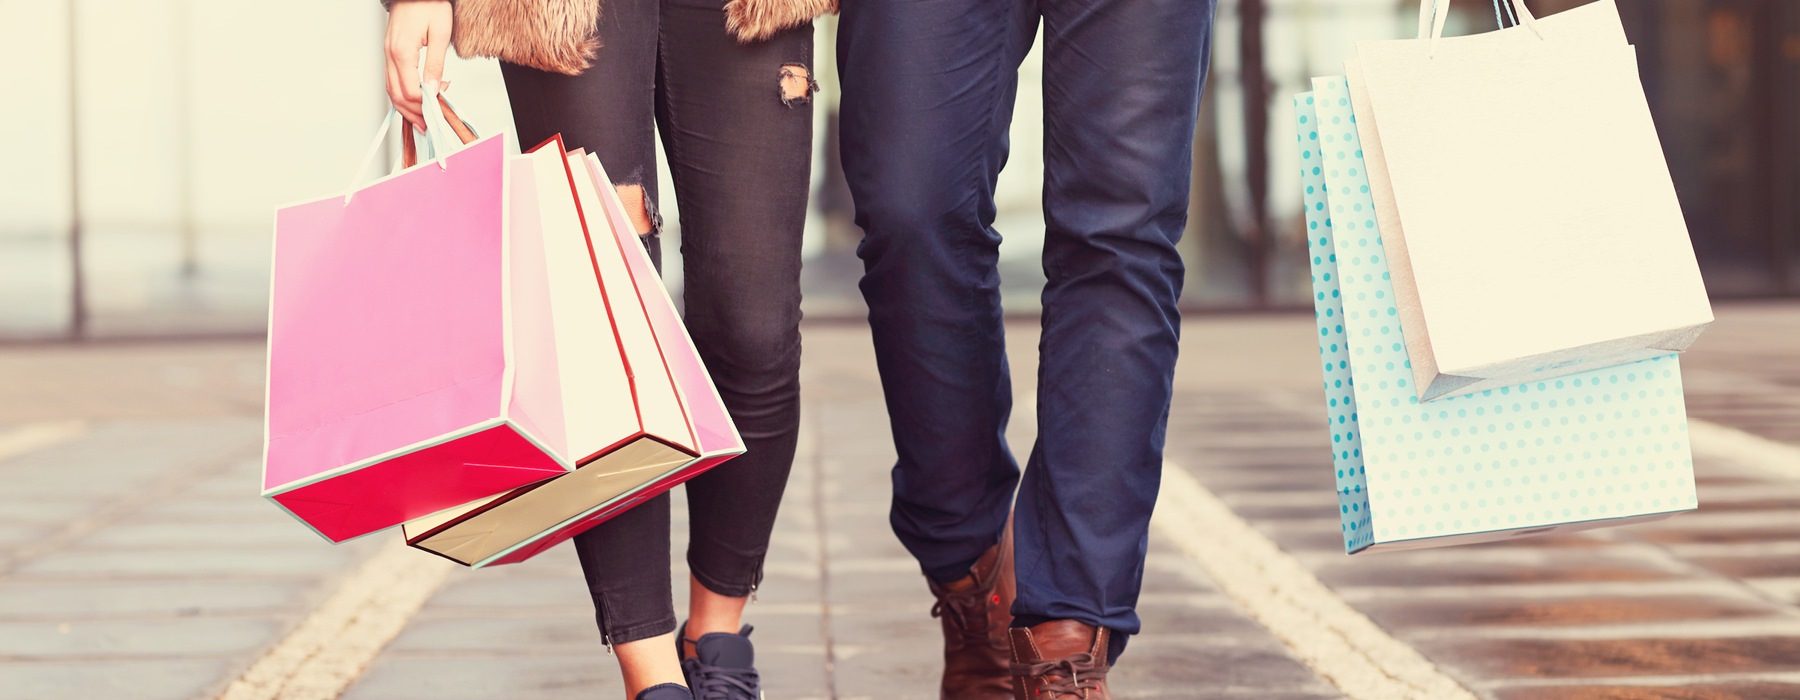 man and woman walking down the street holding shopping bags